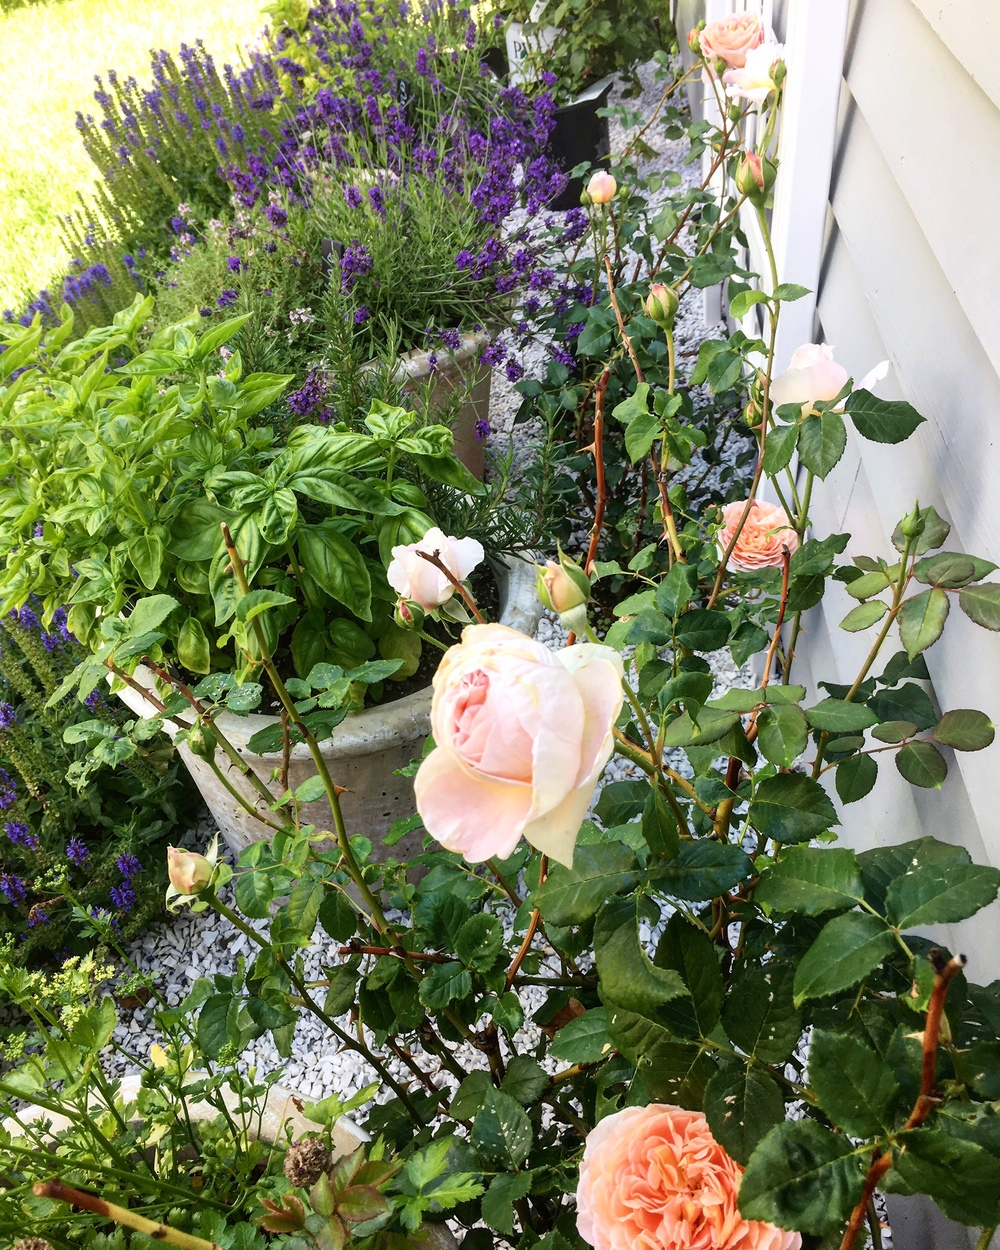 What's better than English roses, lavender, basil and rosemary?